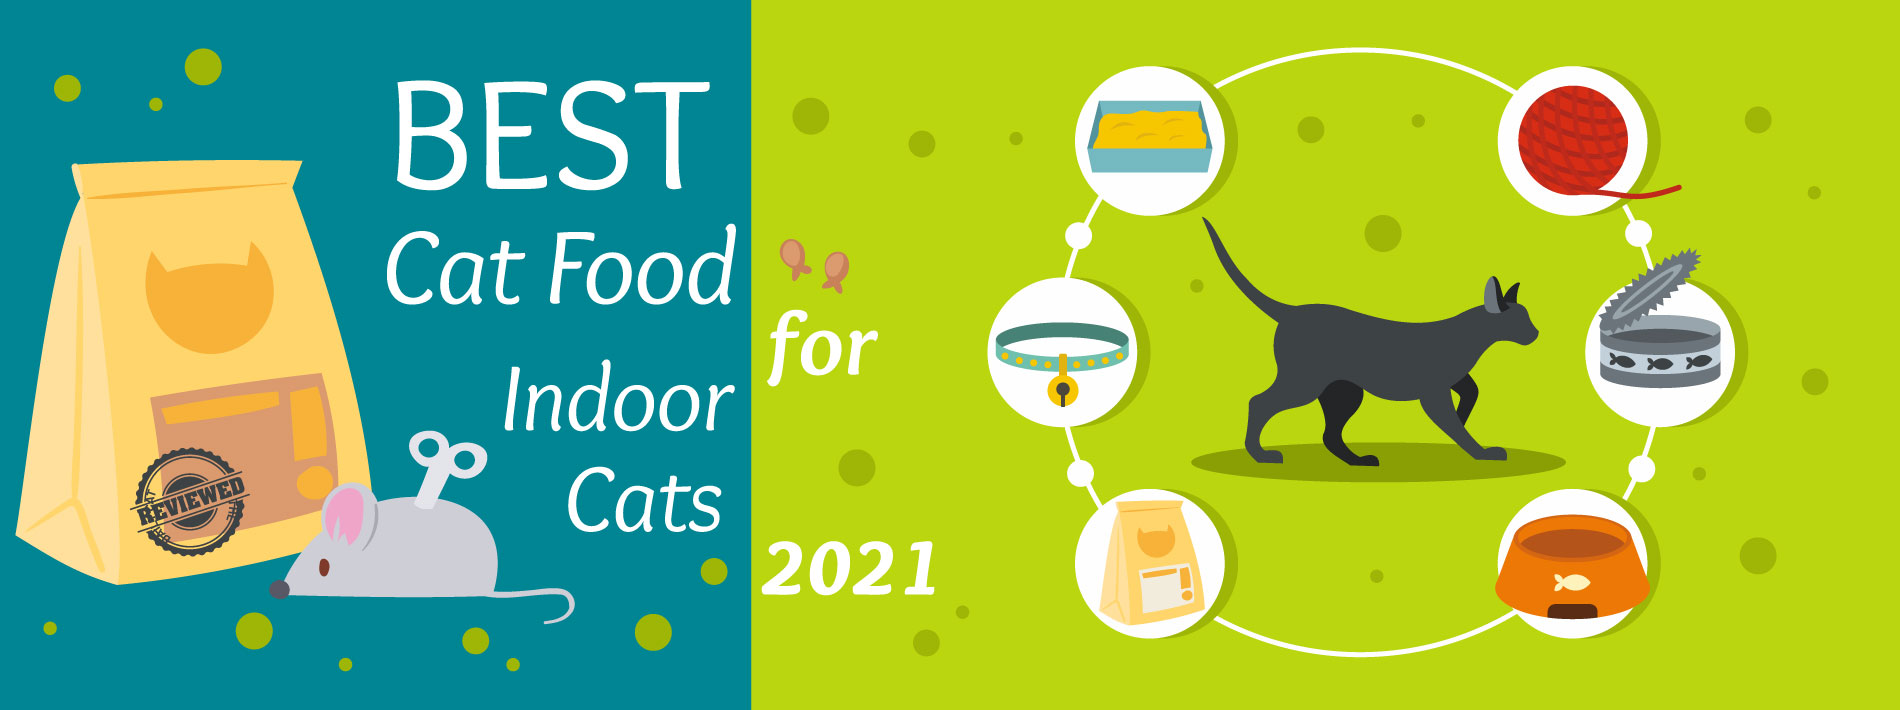 The Daily Cat - Best Cat Food for Indoor Cats Graphic